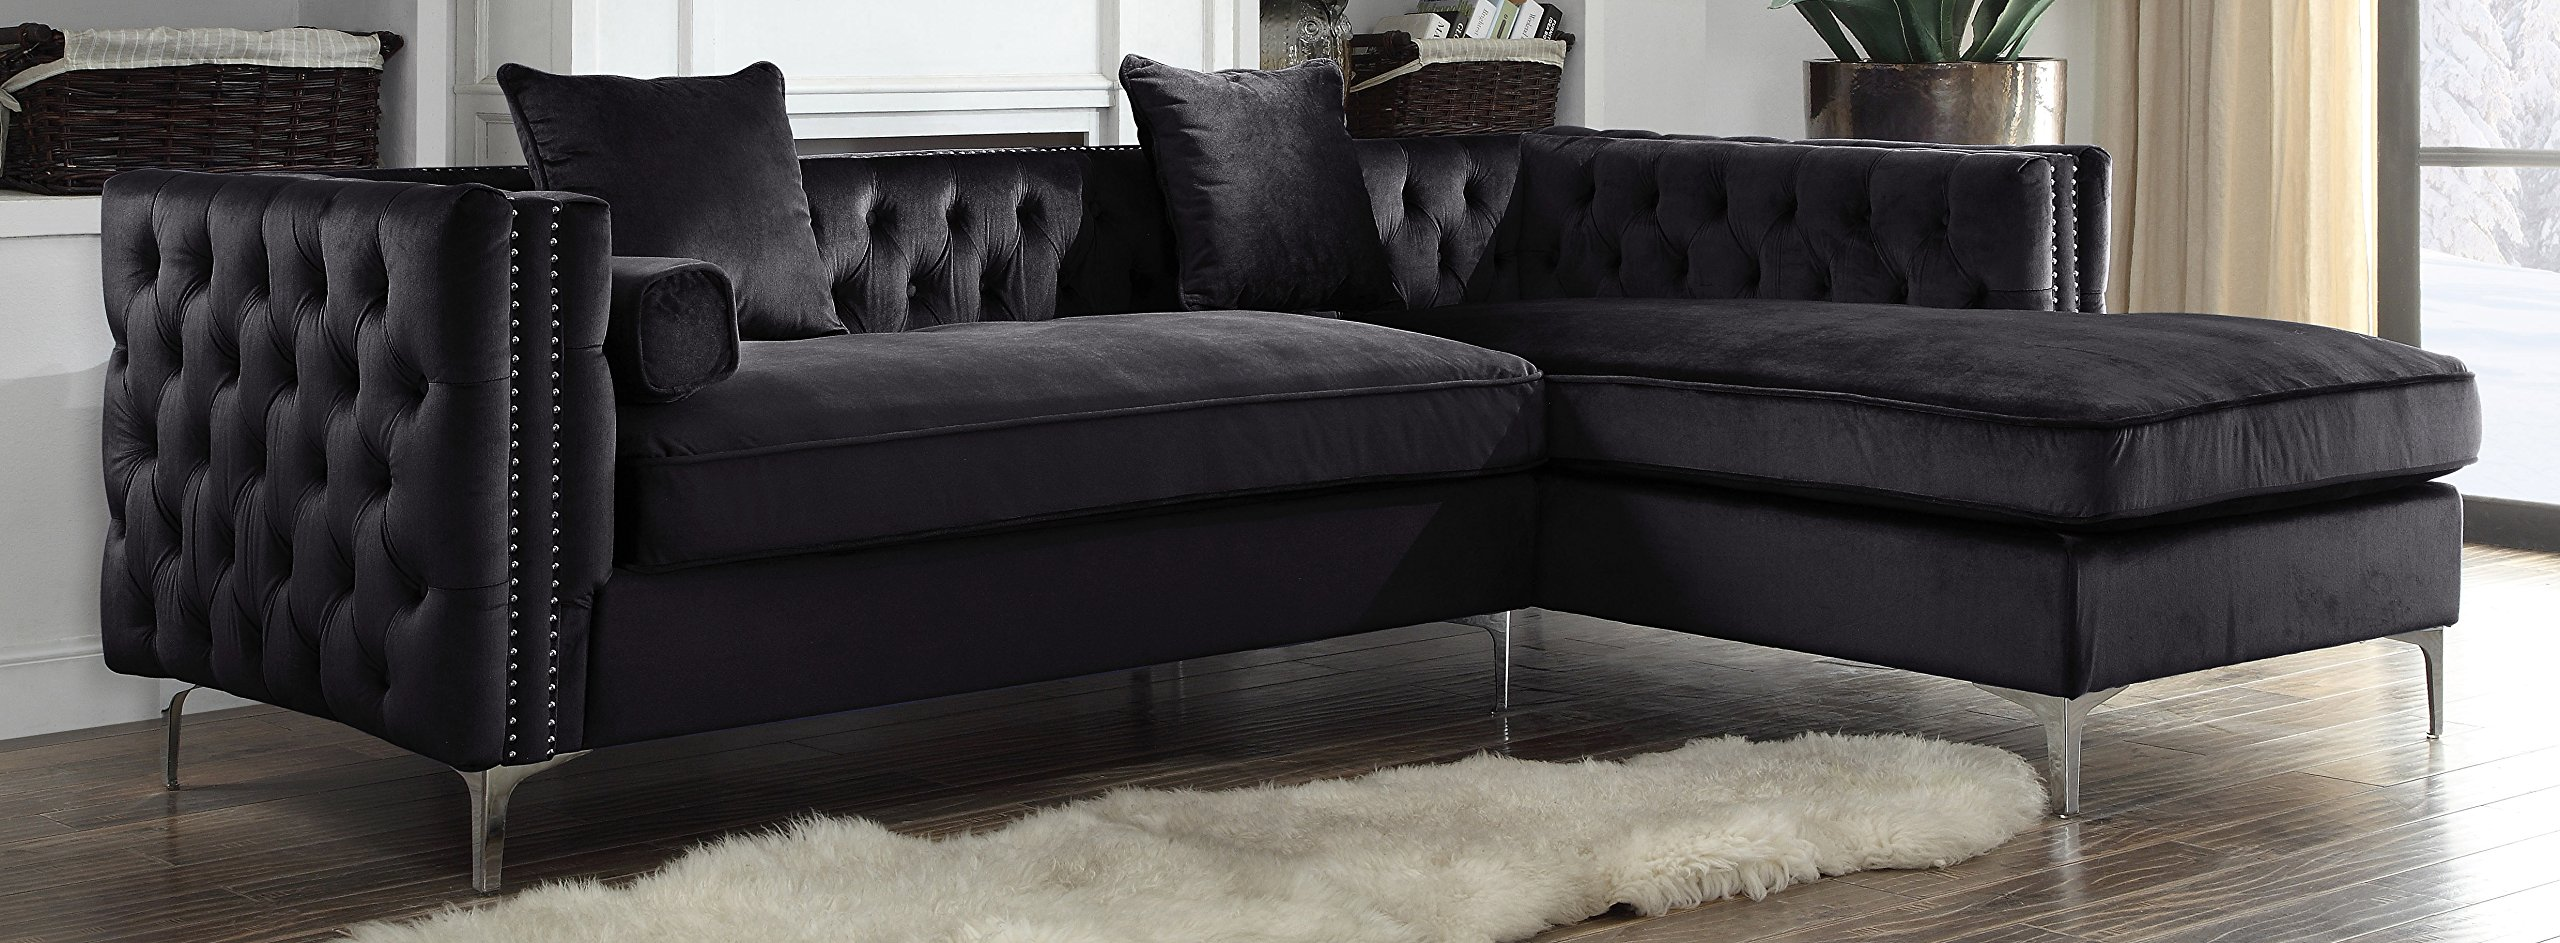 Iconic Home Da Vinci Right Hand Facing Sectional Sofa L Shape Chaise Velvet Button Tufted with Silver Nail Head Trim Silvertone Metal Y-Leg with 3 Accent Pillows, Modern Contemporary, Black